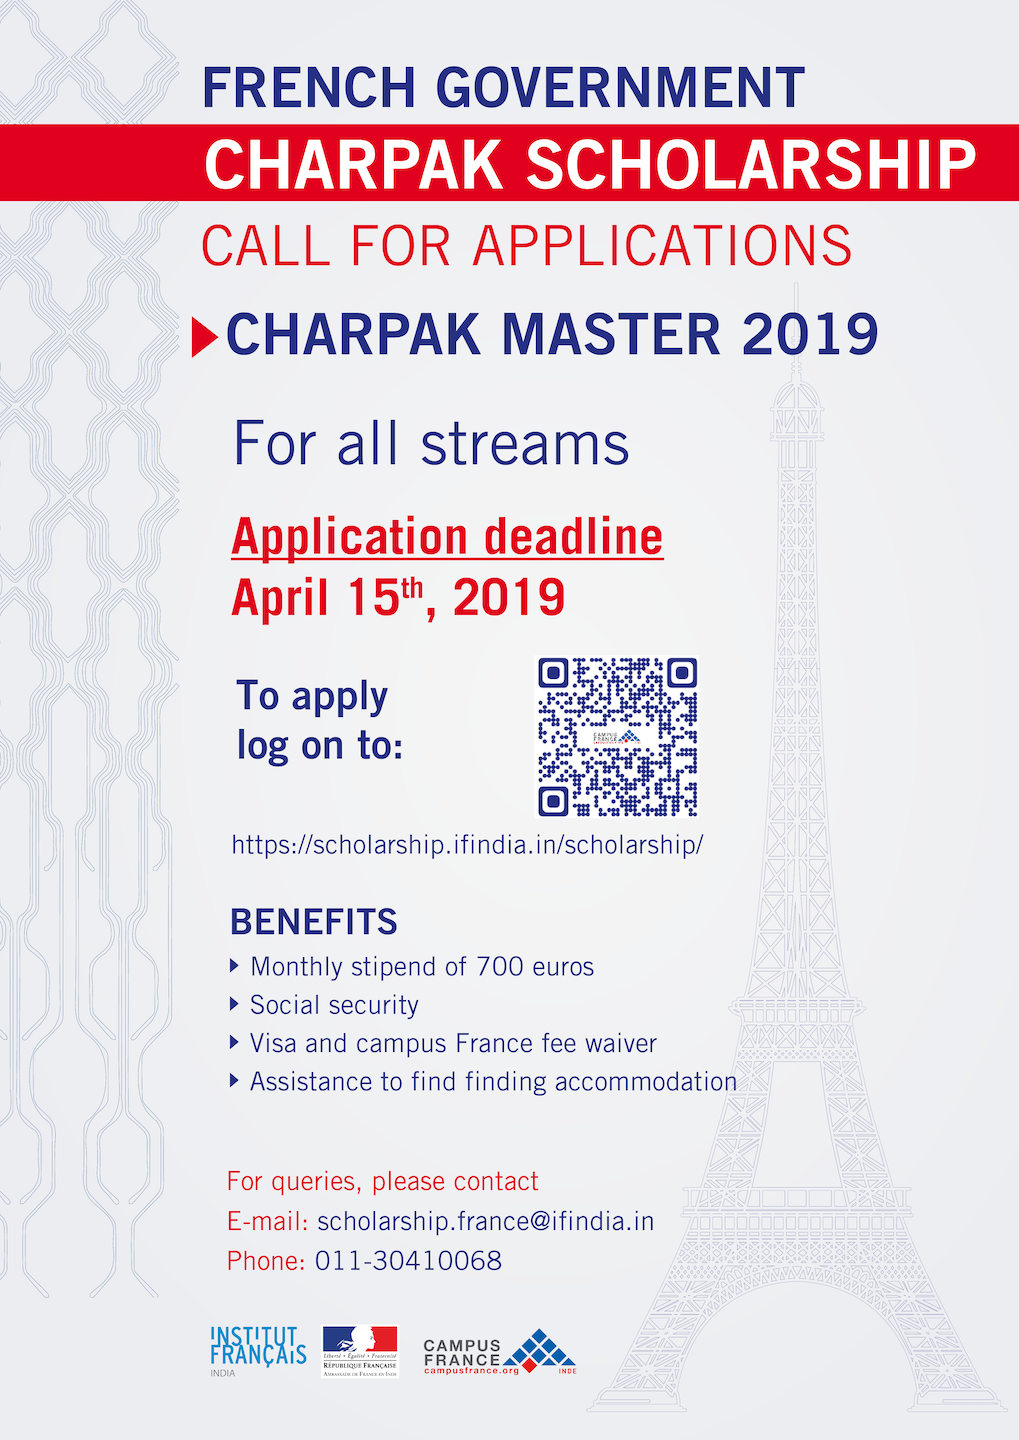 Charpak scholarship call for application